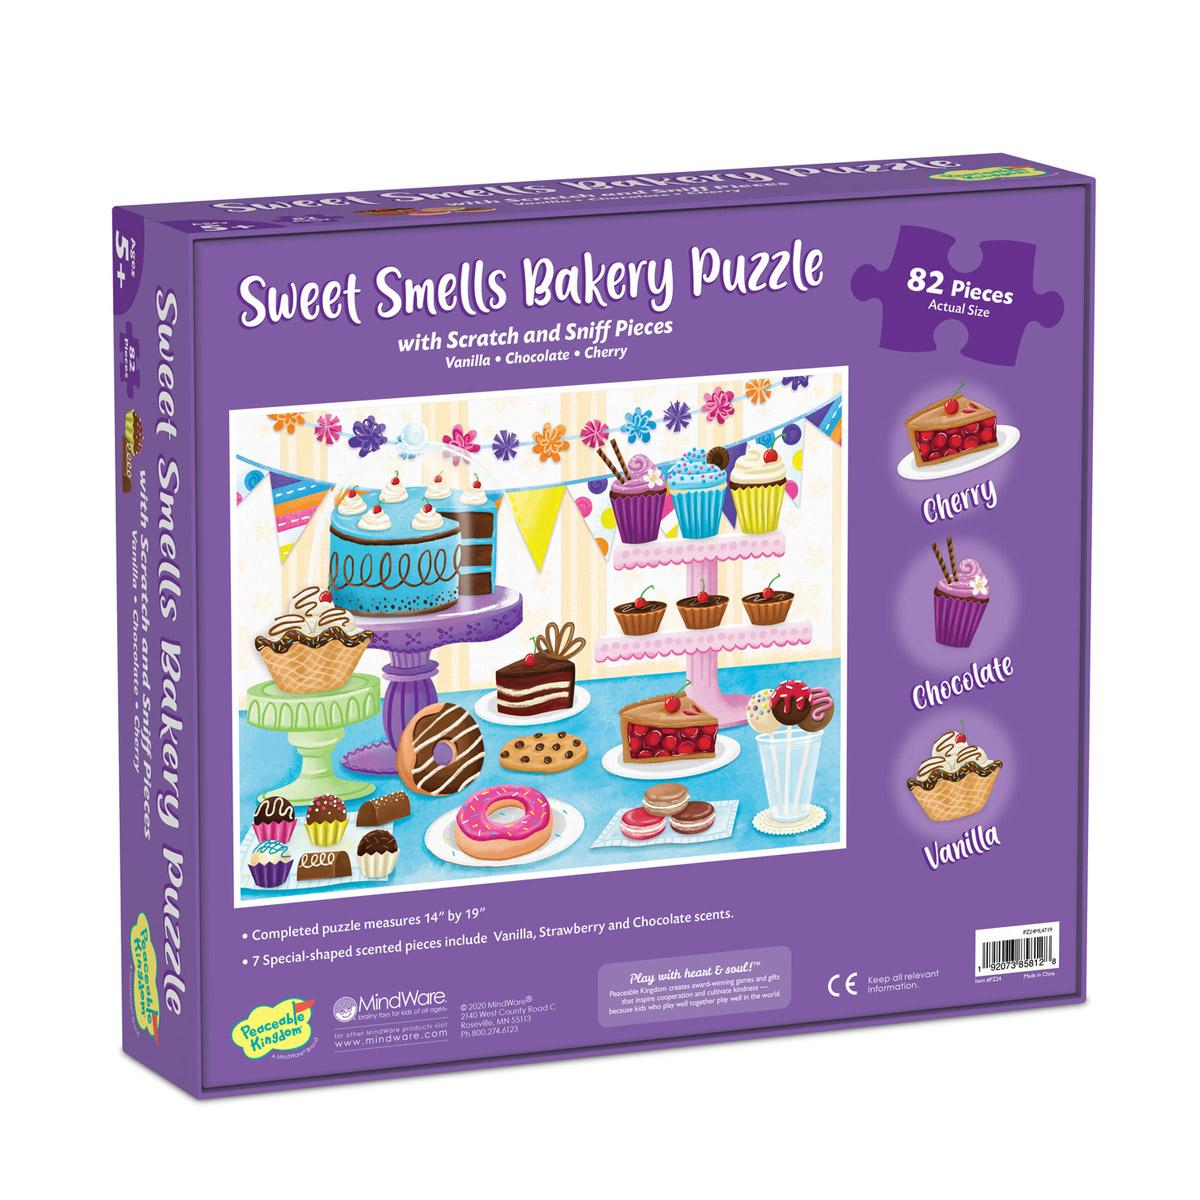 Scratch and Sniff Bakery Puzzle